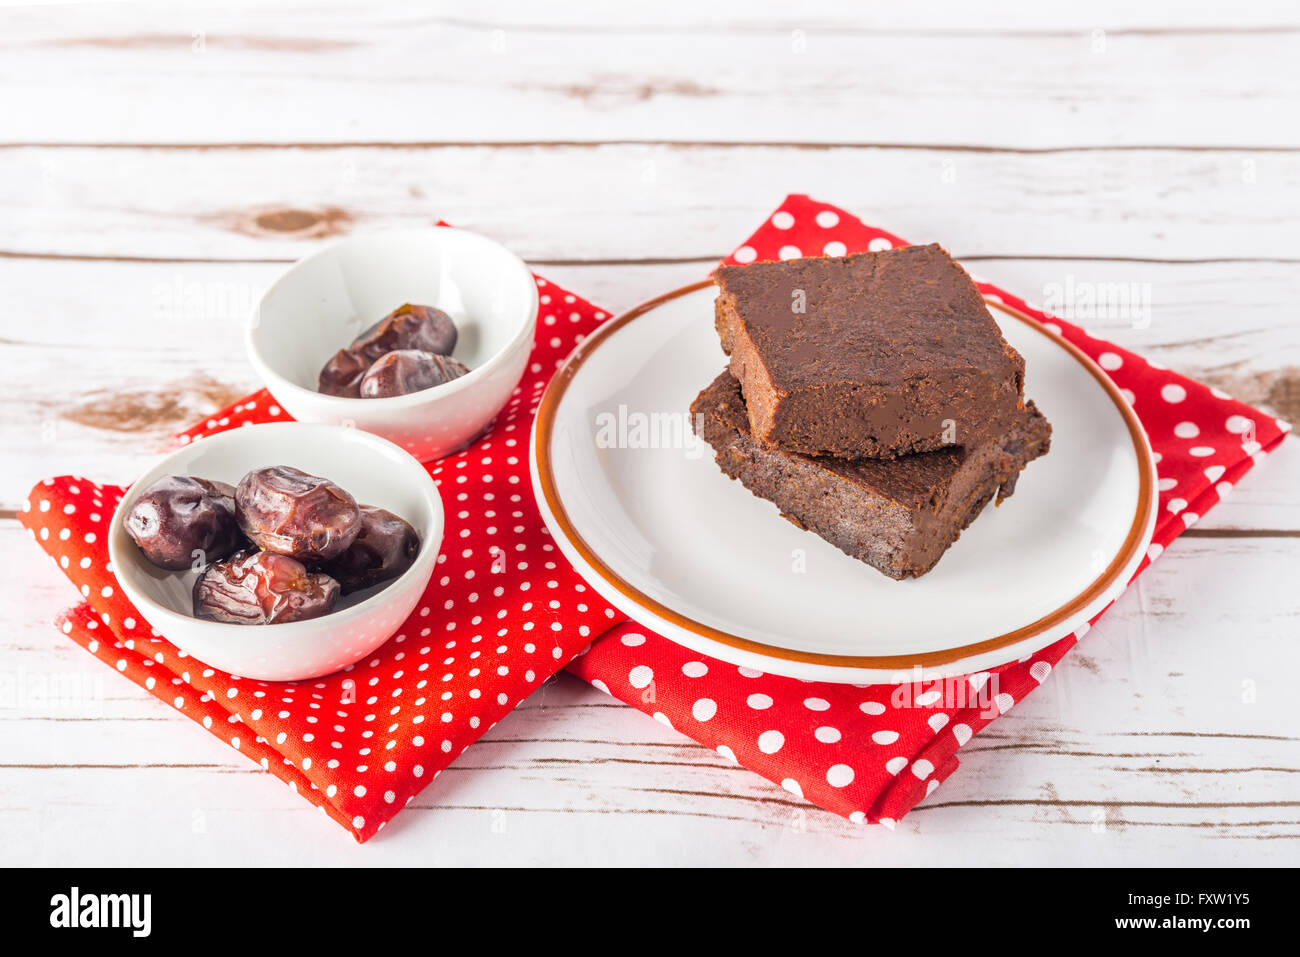 Healthy gluten free Paleo style brownies made with sweet potato, dates and almond flour on a white plate - Stock Image